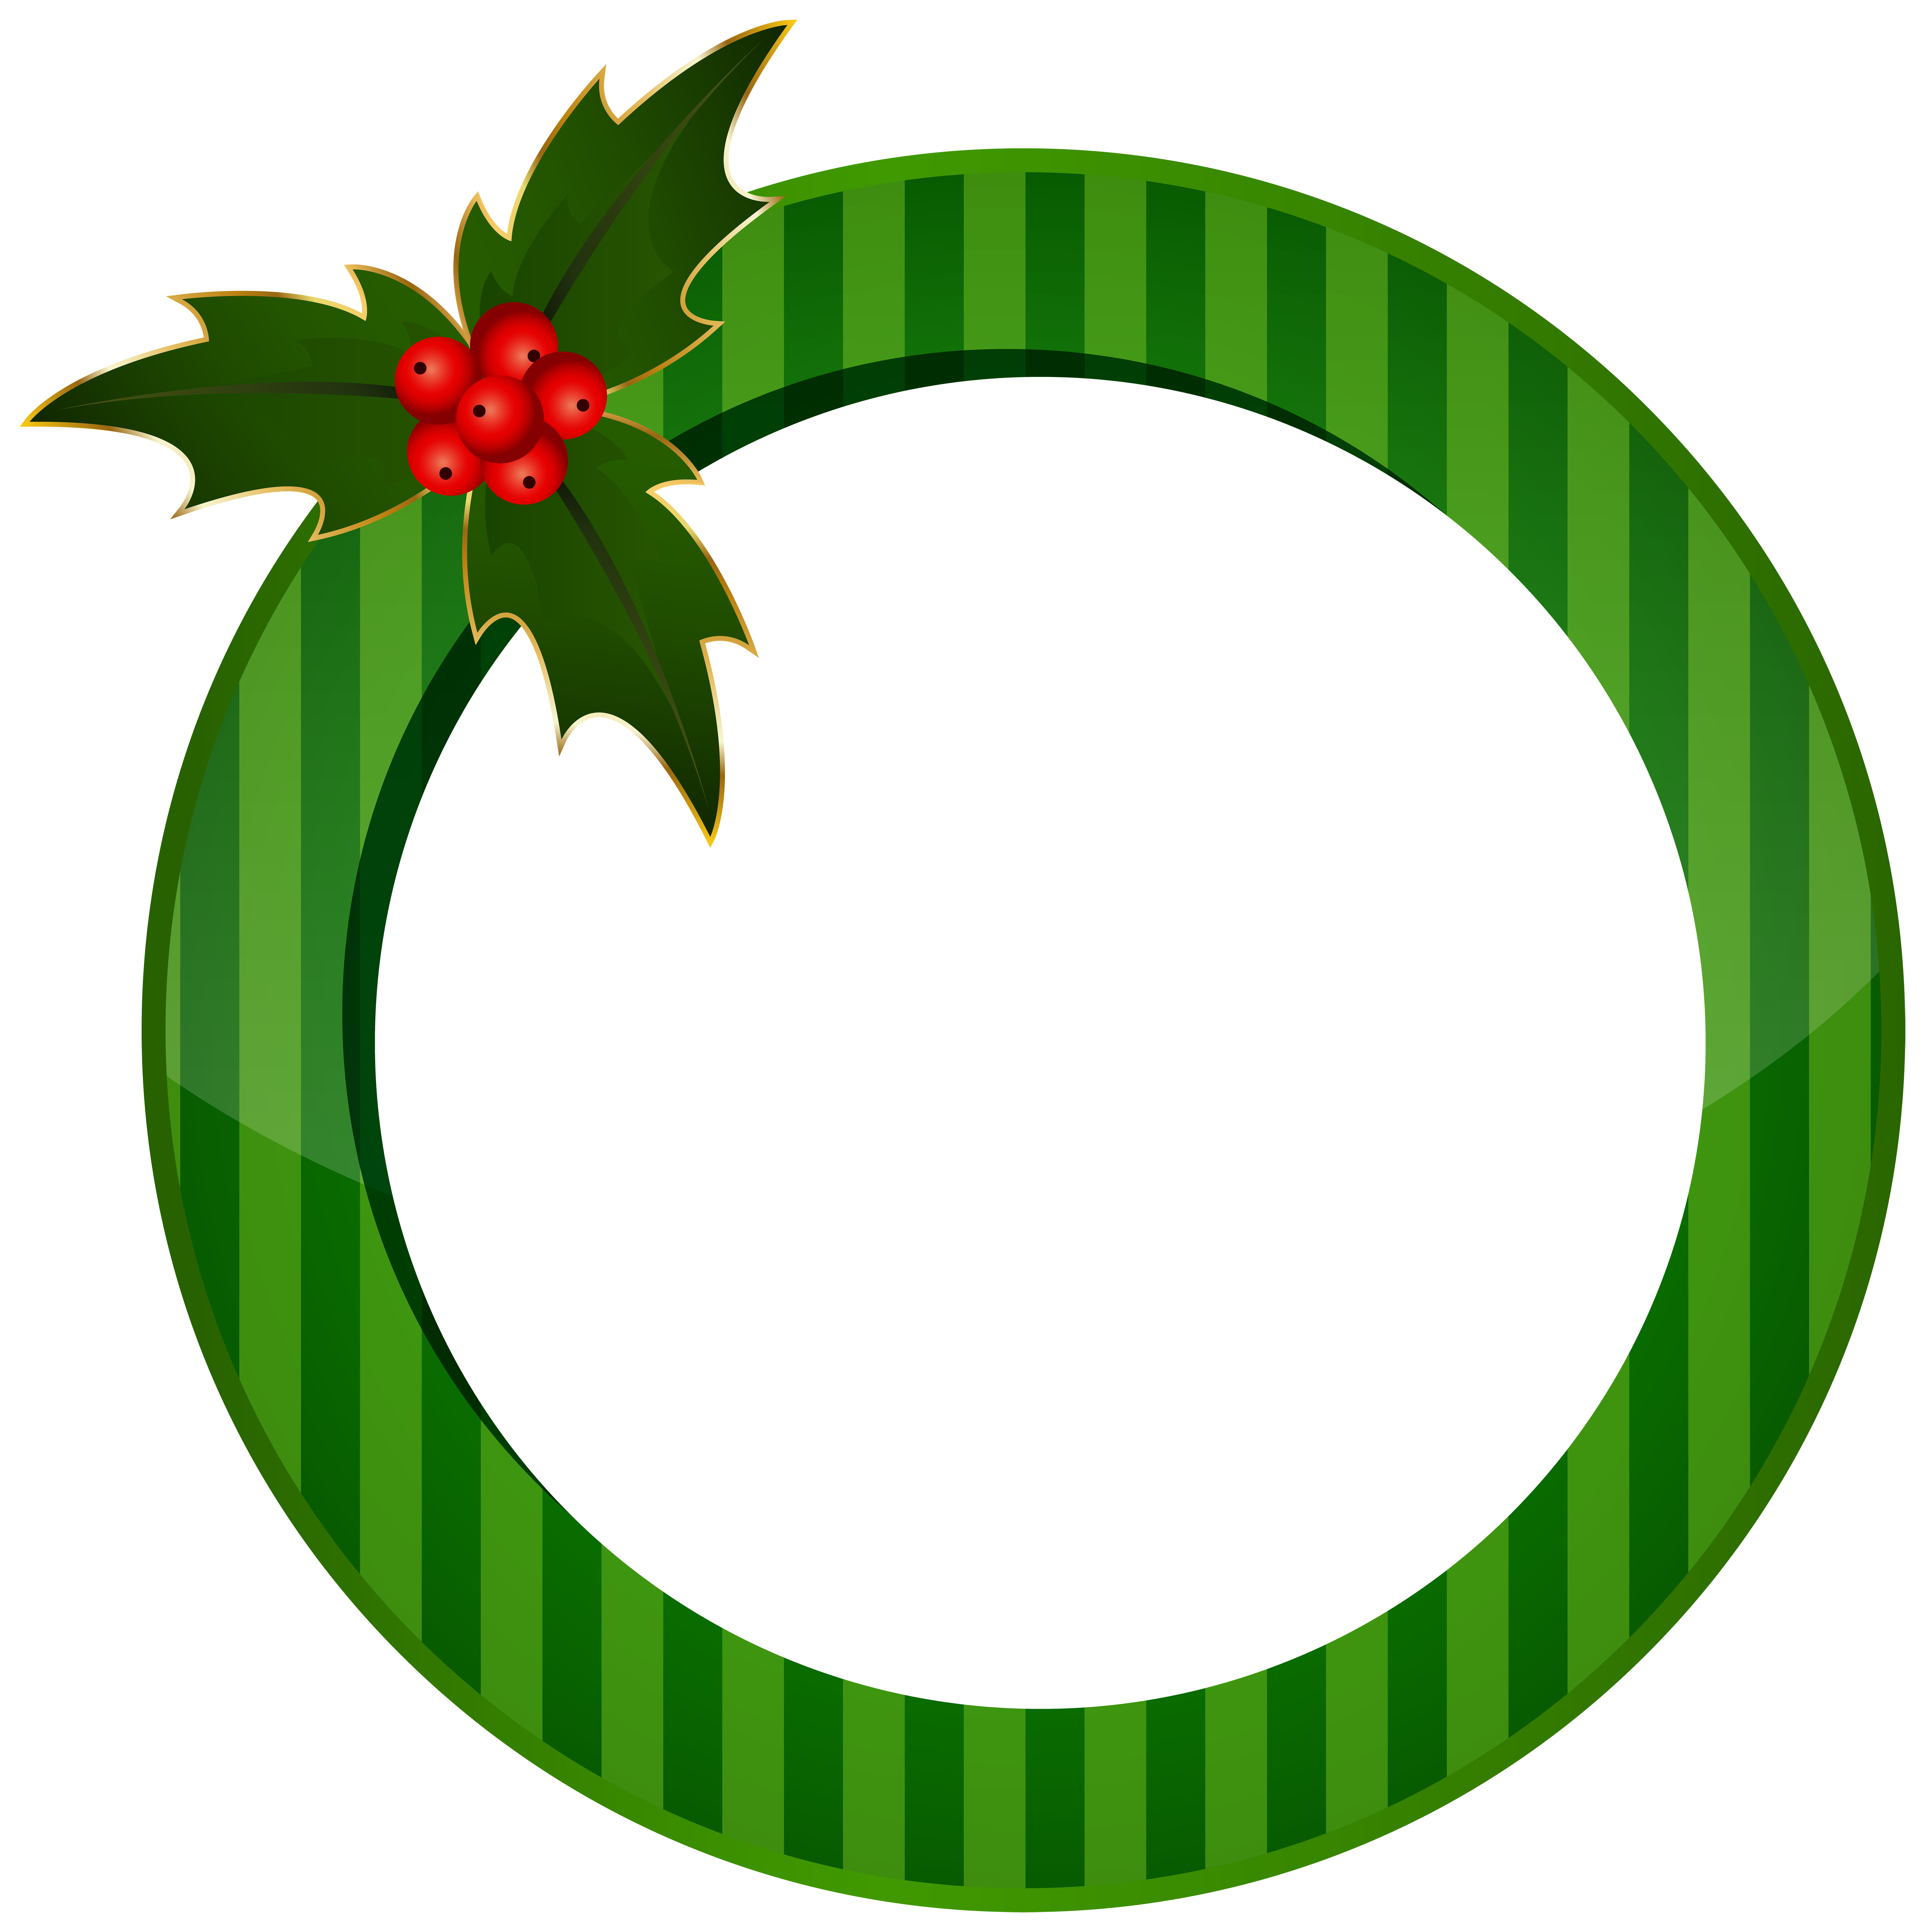 Transparent holly green. Christmas round frame image